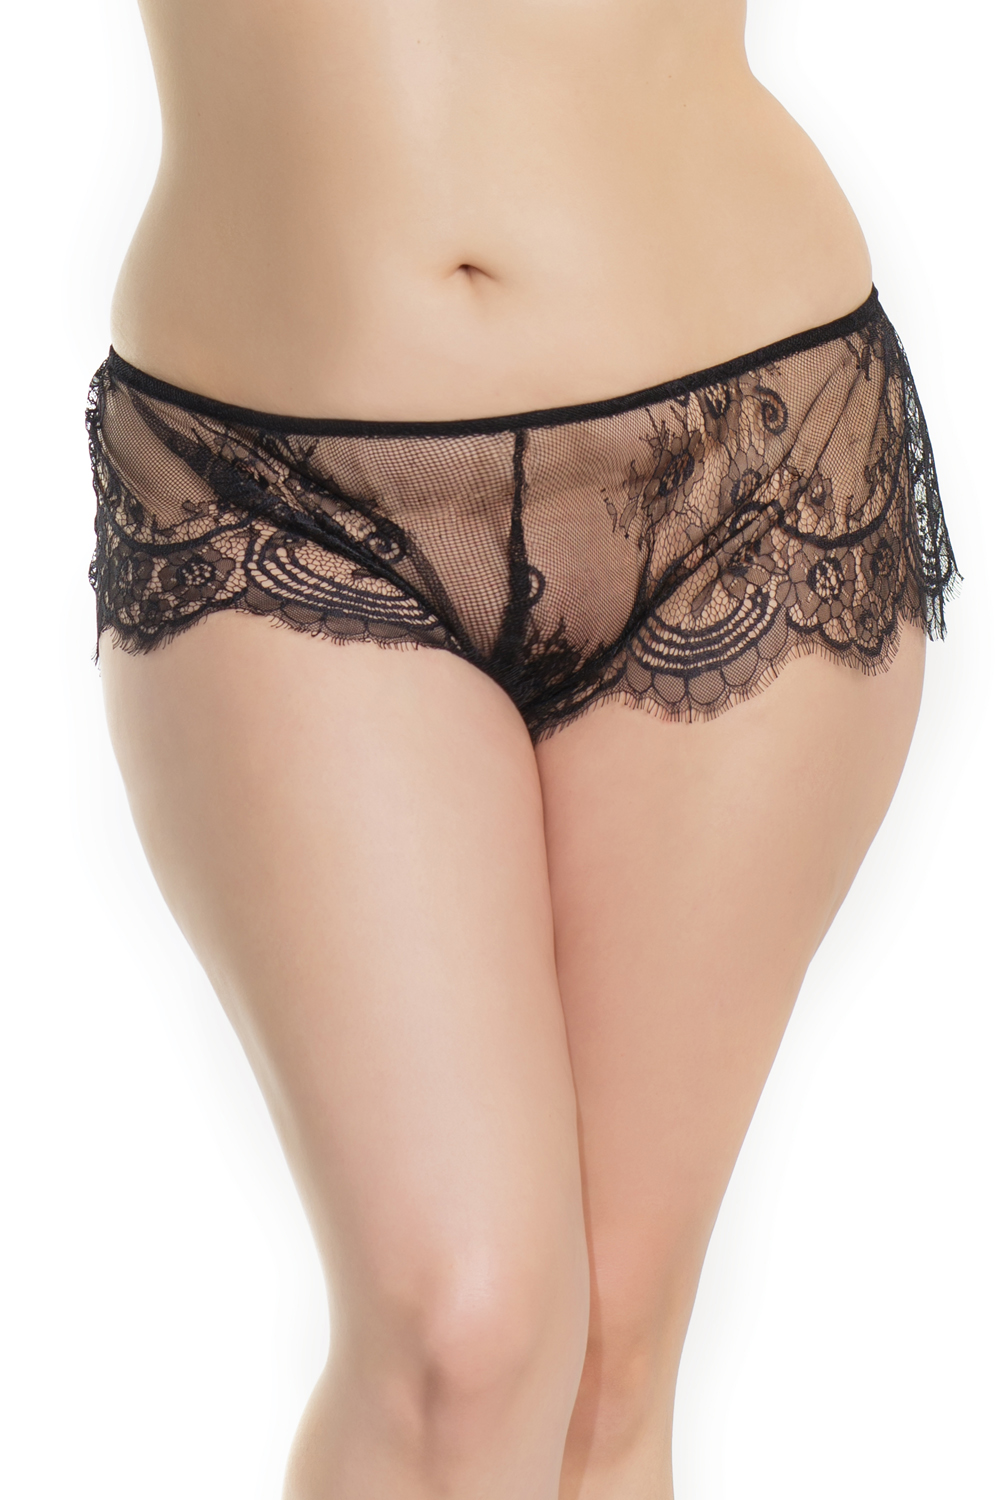 Flared lace panties 7207 Edmonton